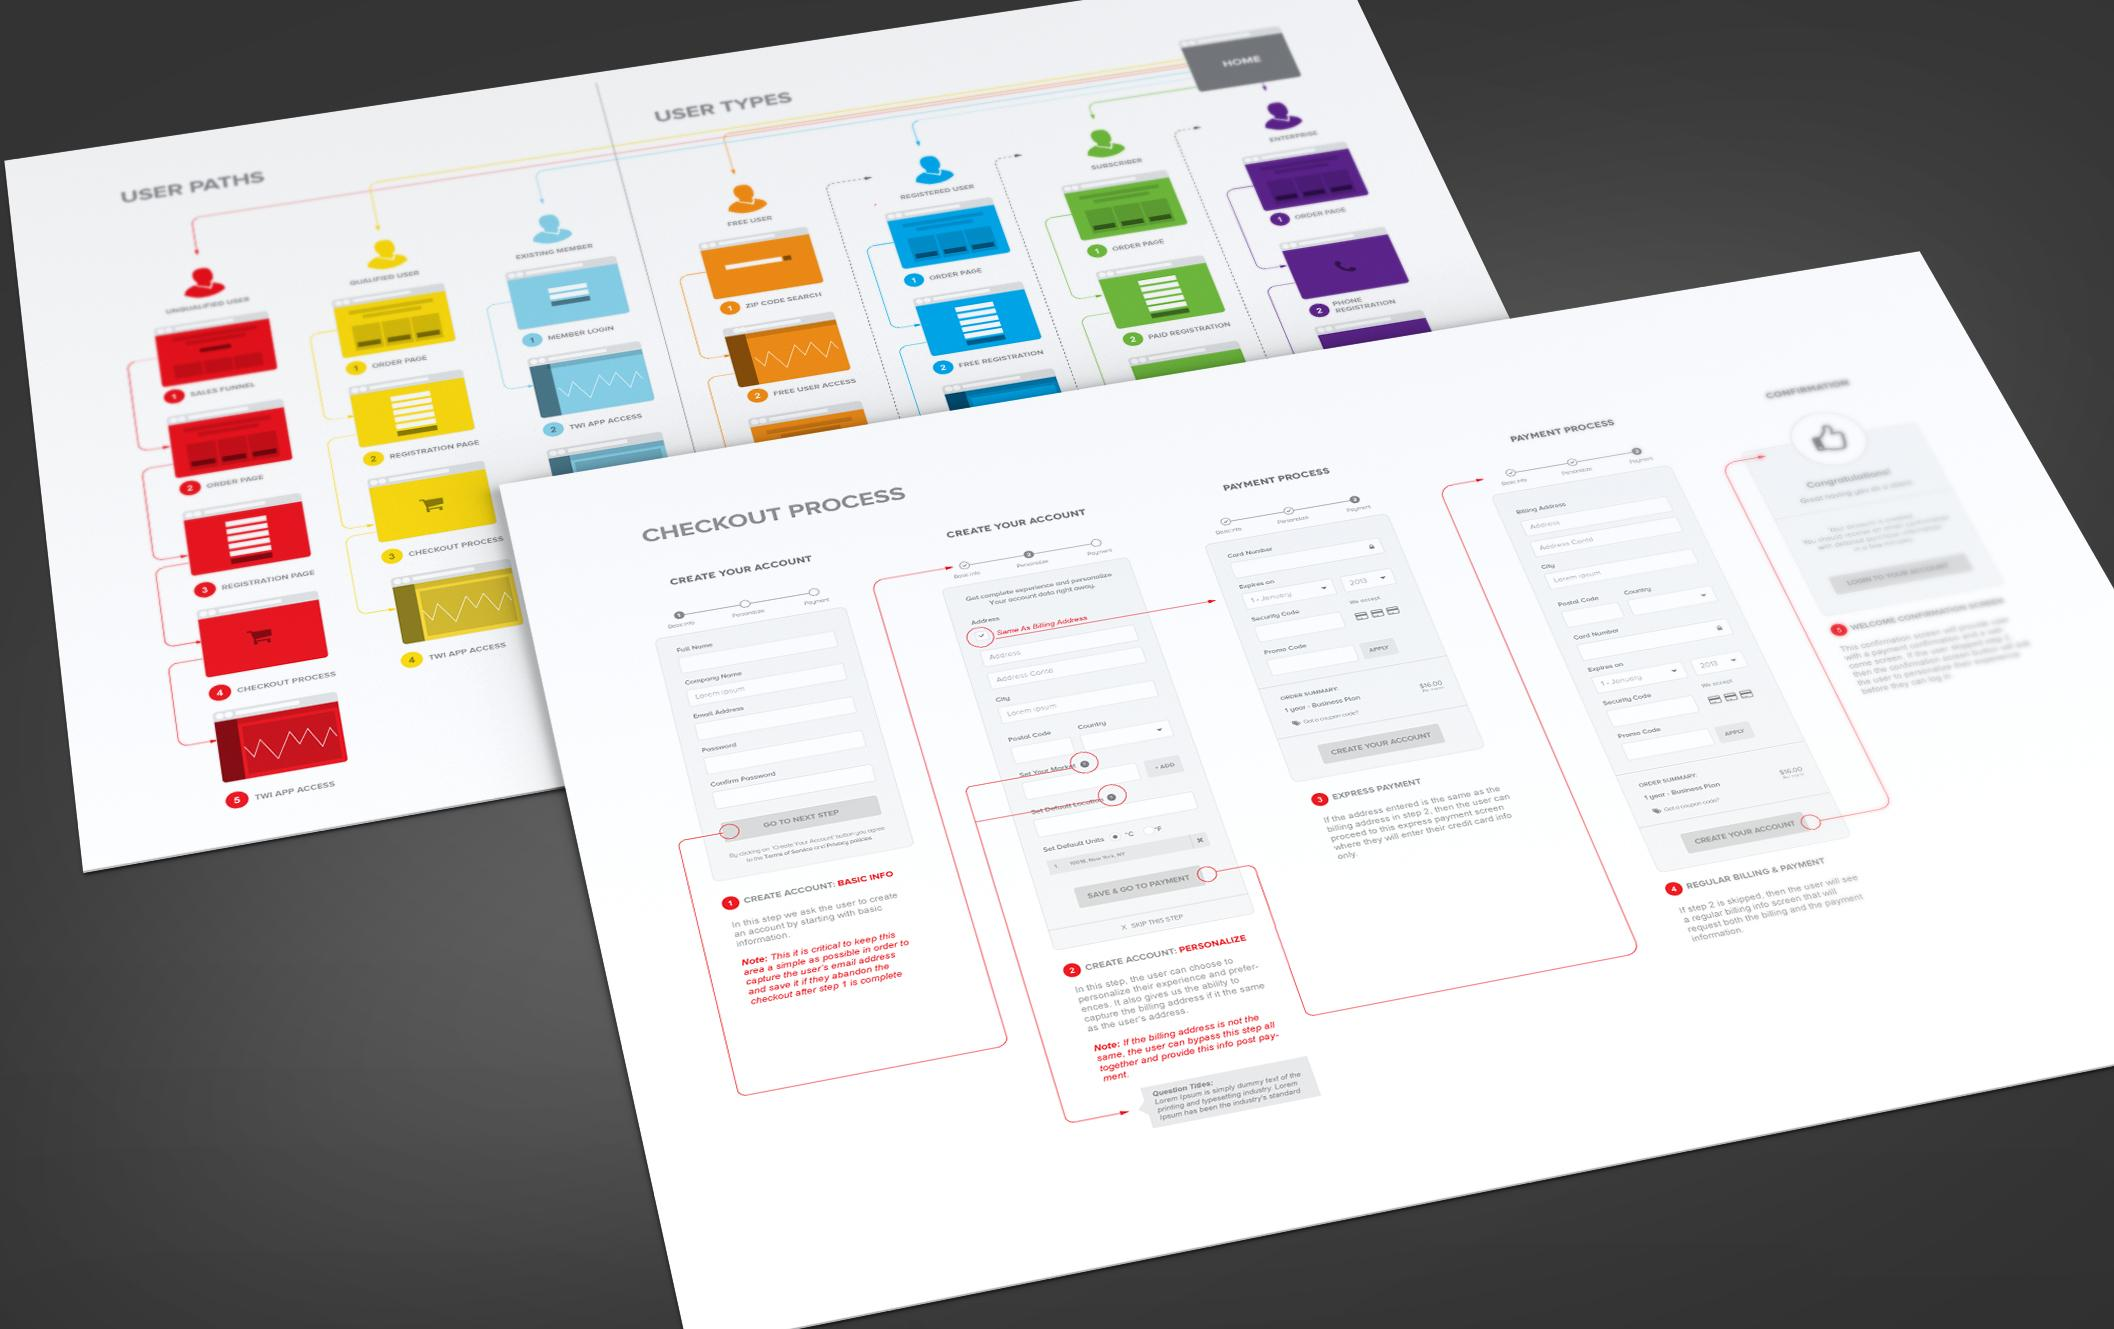 wireframing a checkout process as part of user experience design